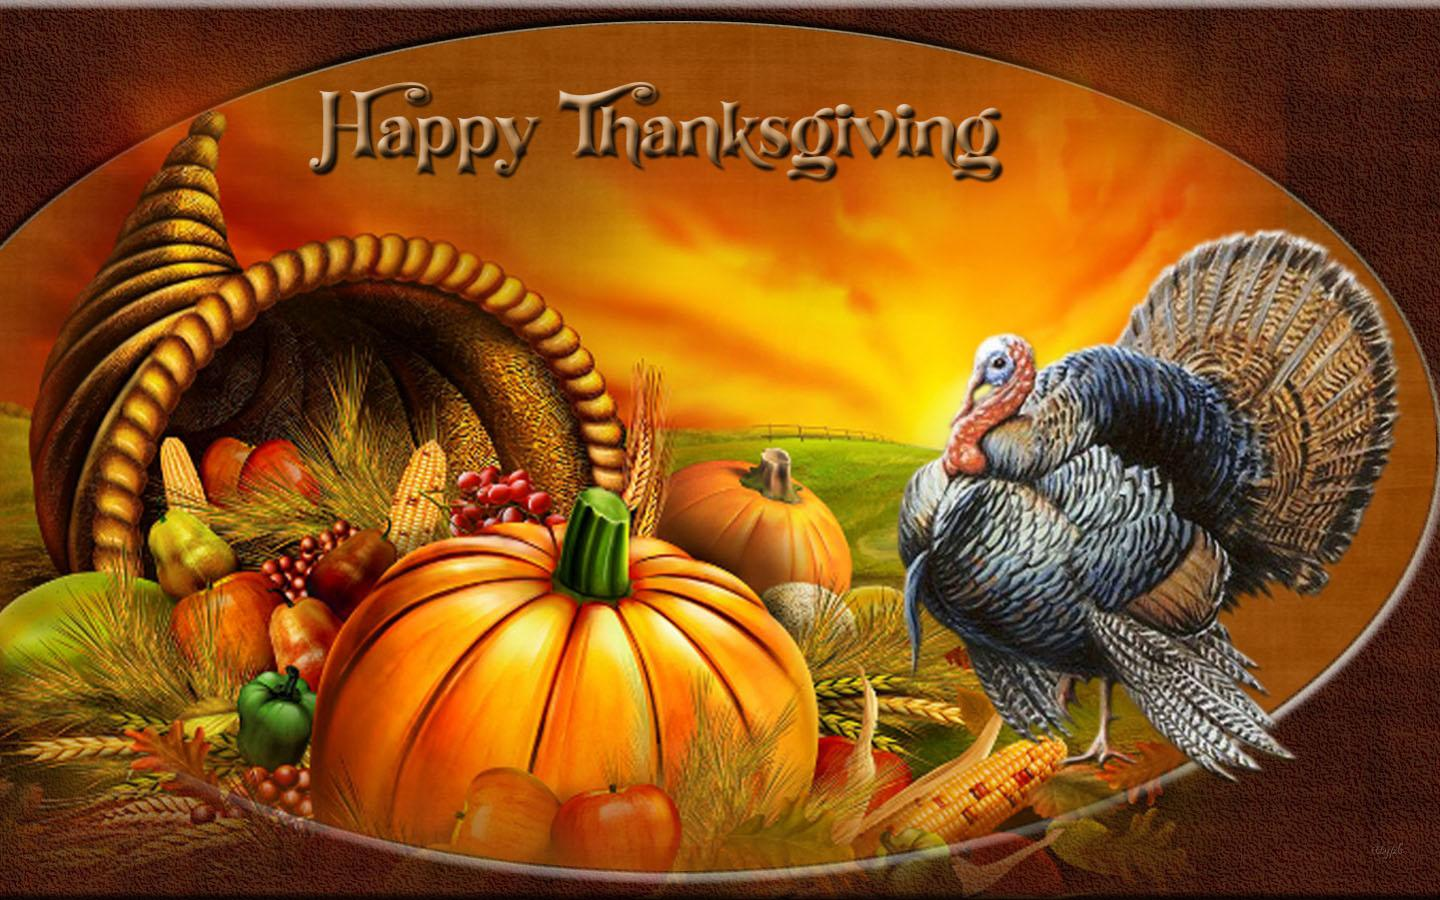 Happy Thanksgiving Wallpapers  Android Apps on Google Play